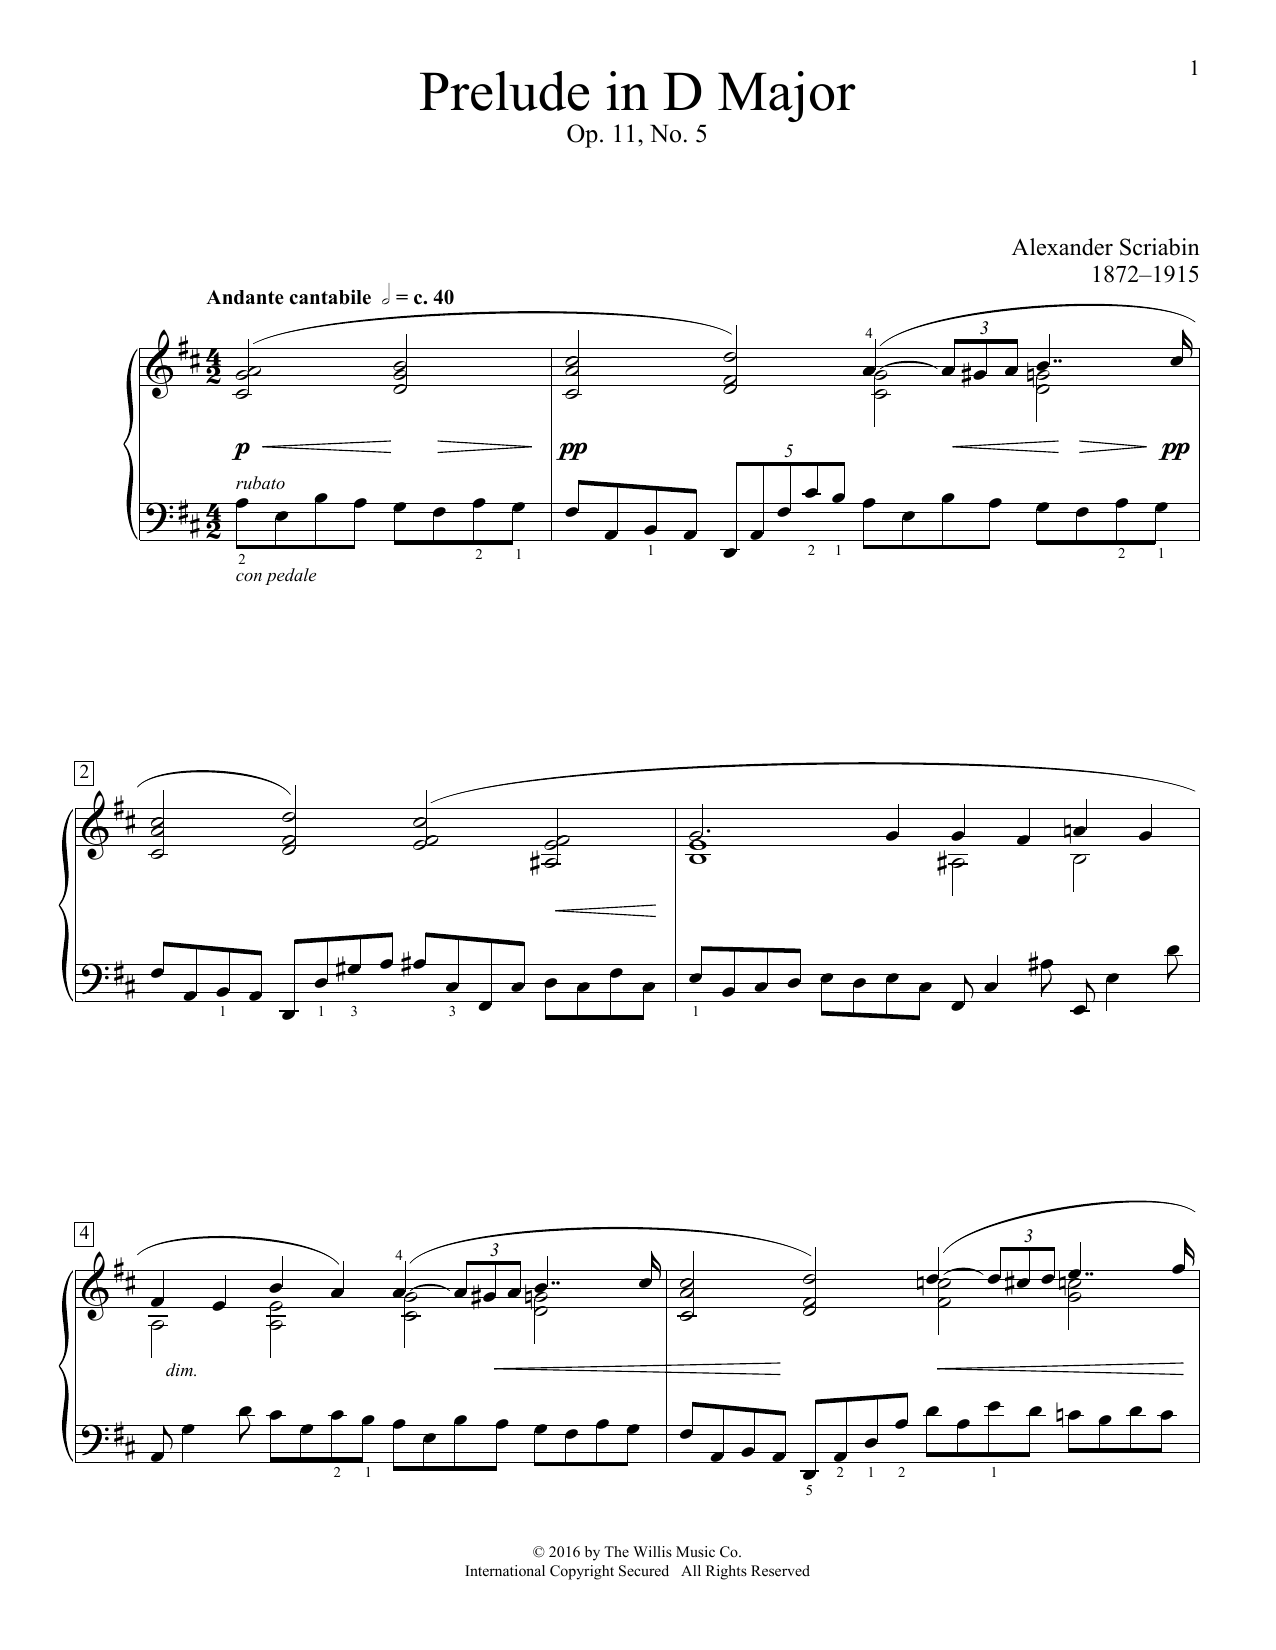 Alexander Scriabin Prelude In D Major, Op. 11, No. 5 sheet music notes and chords. Download Printable PDF.